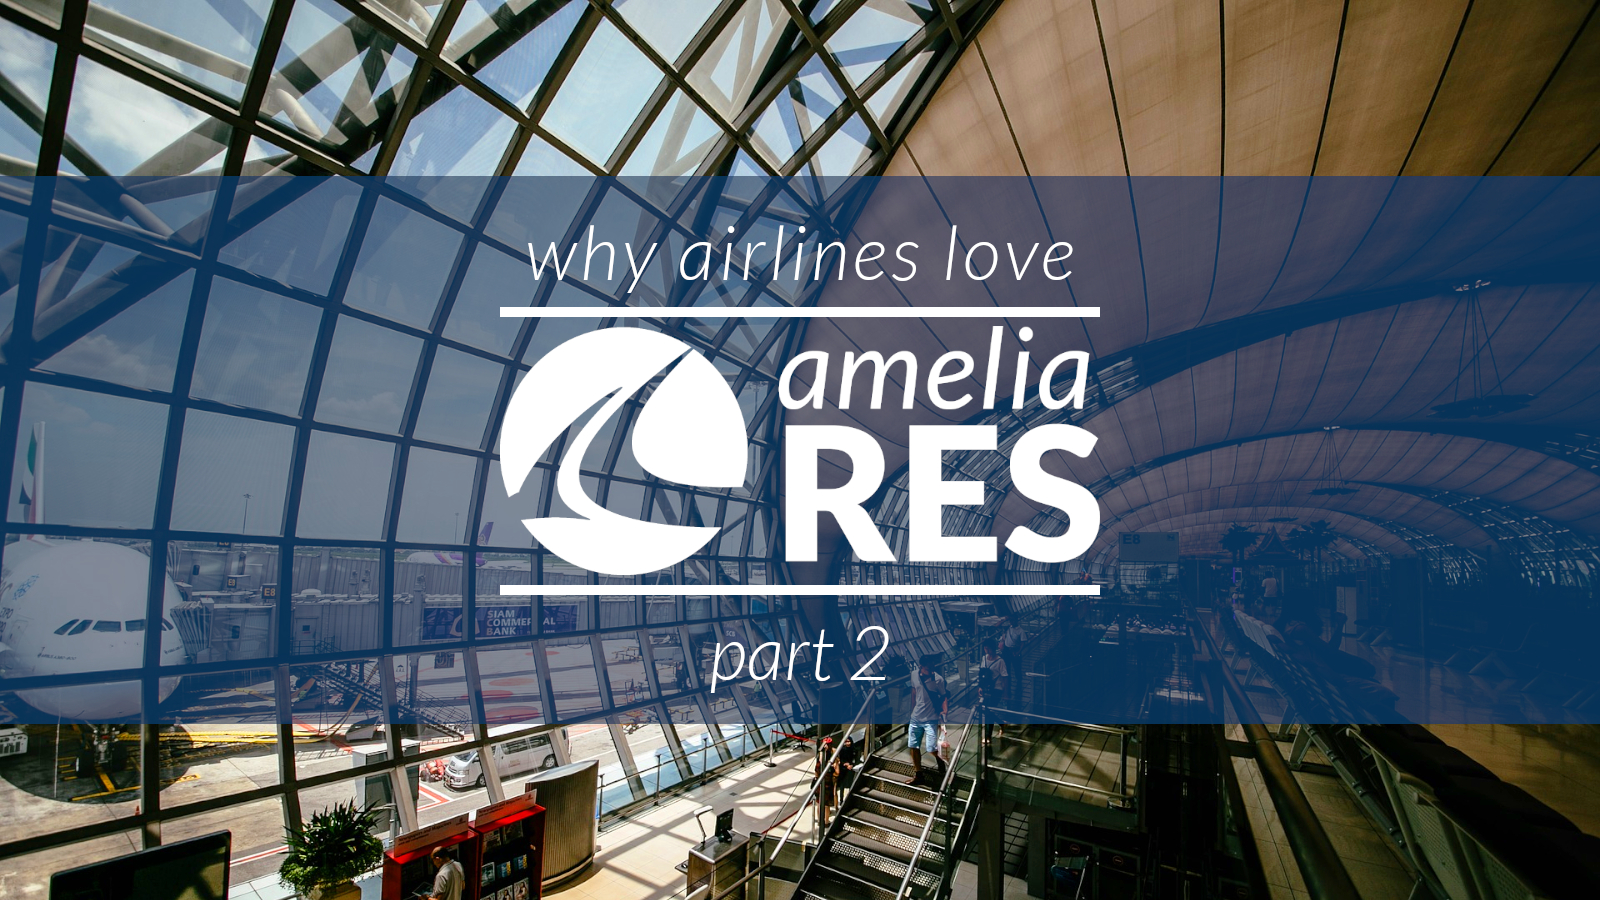 Why Airlines Love ameliaRES, part 2